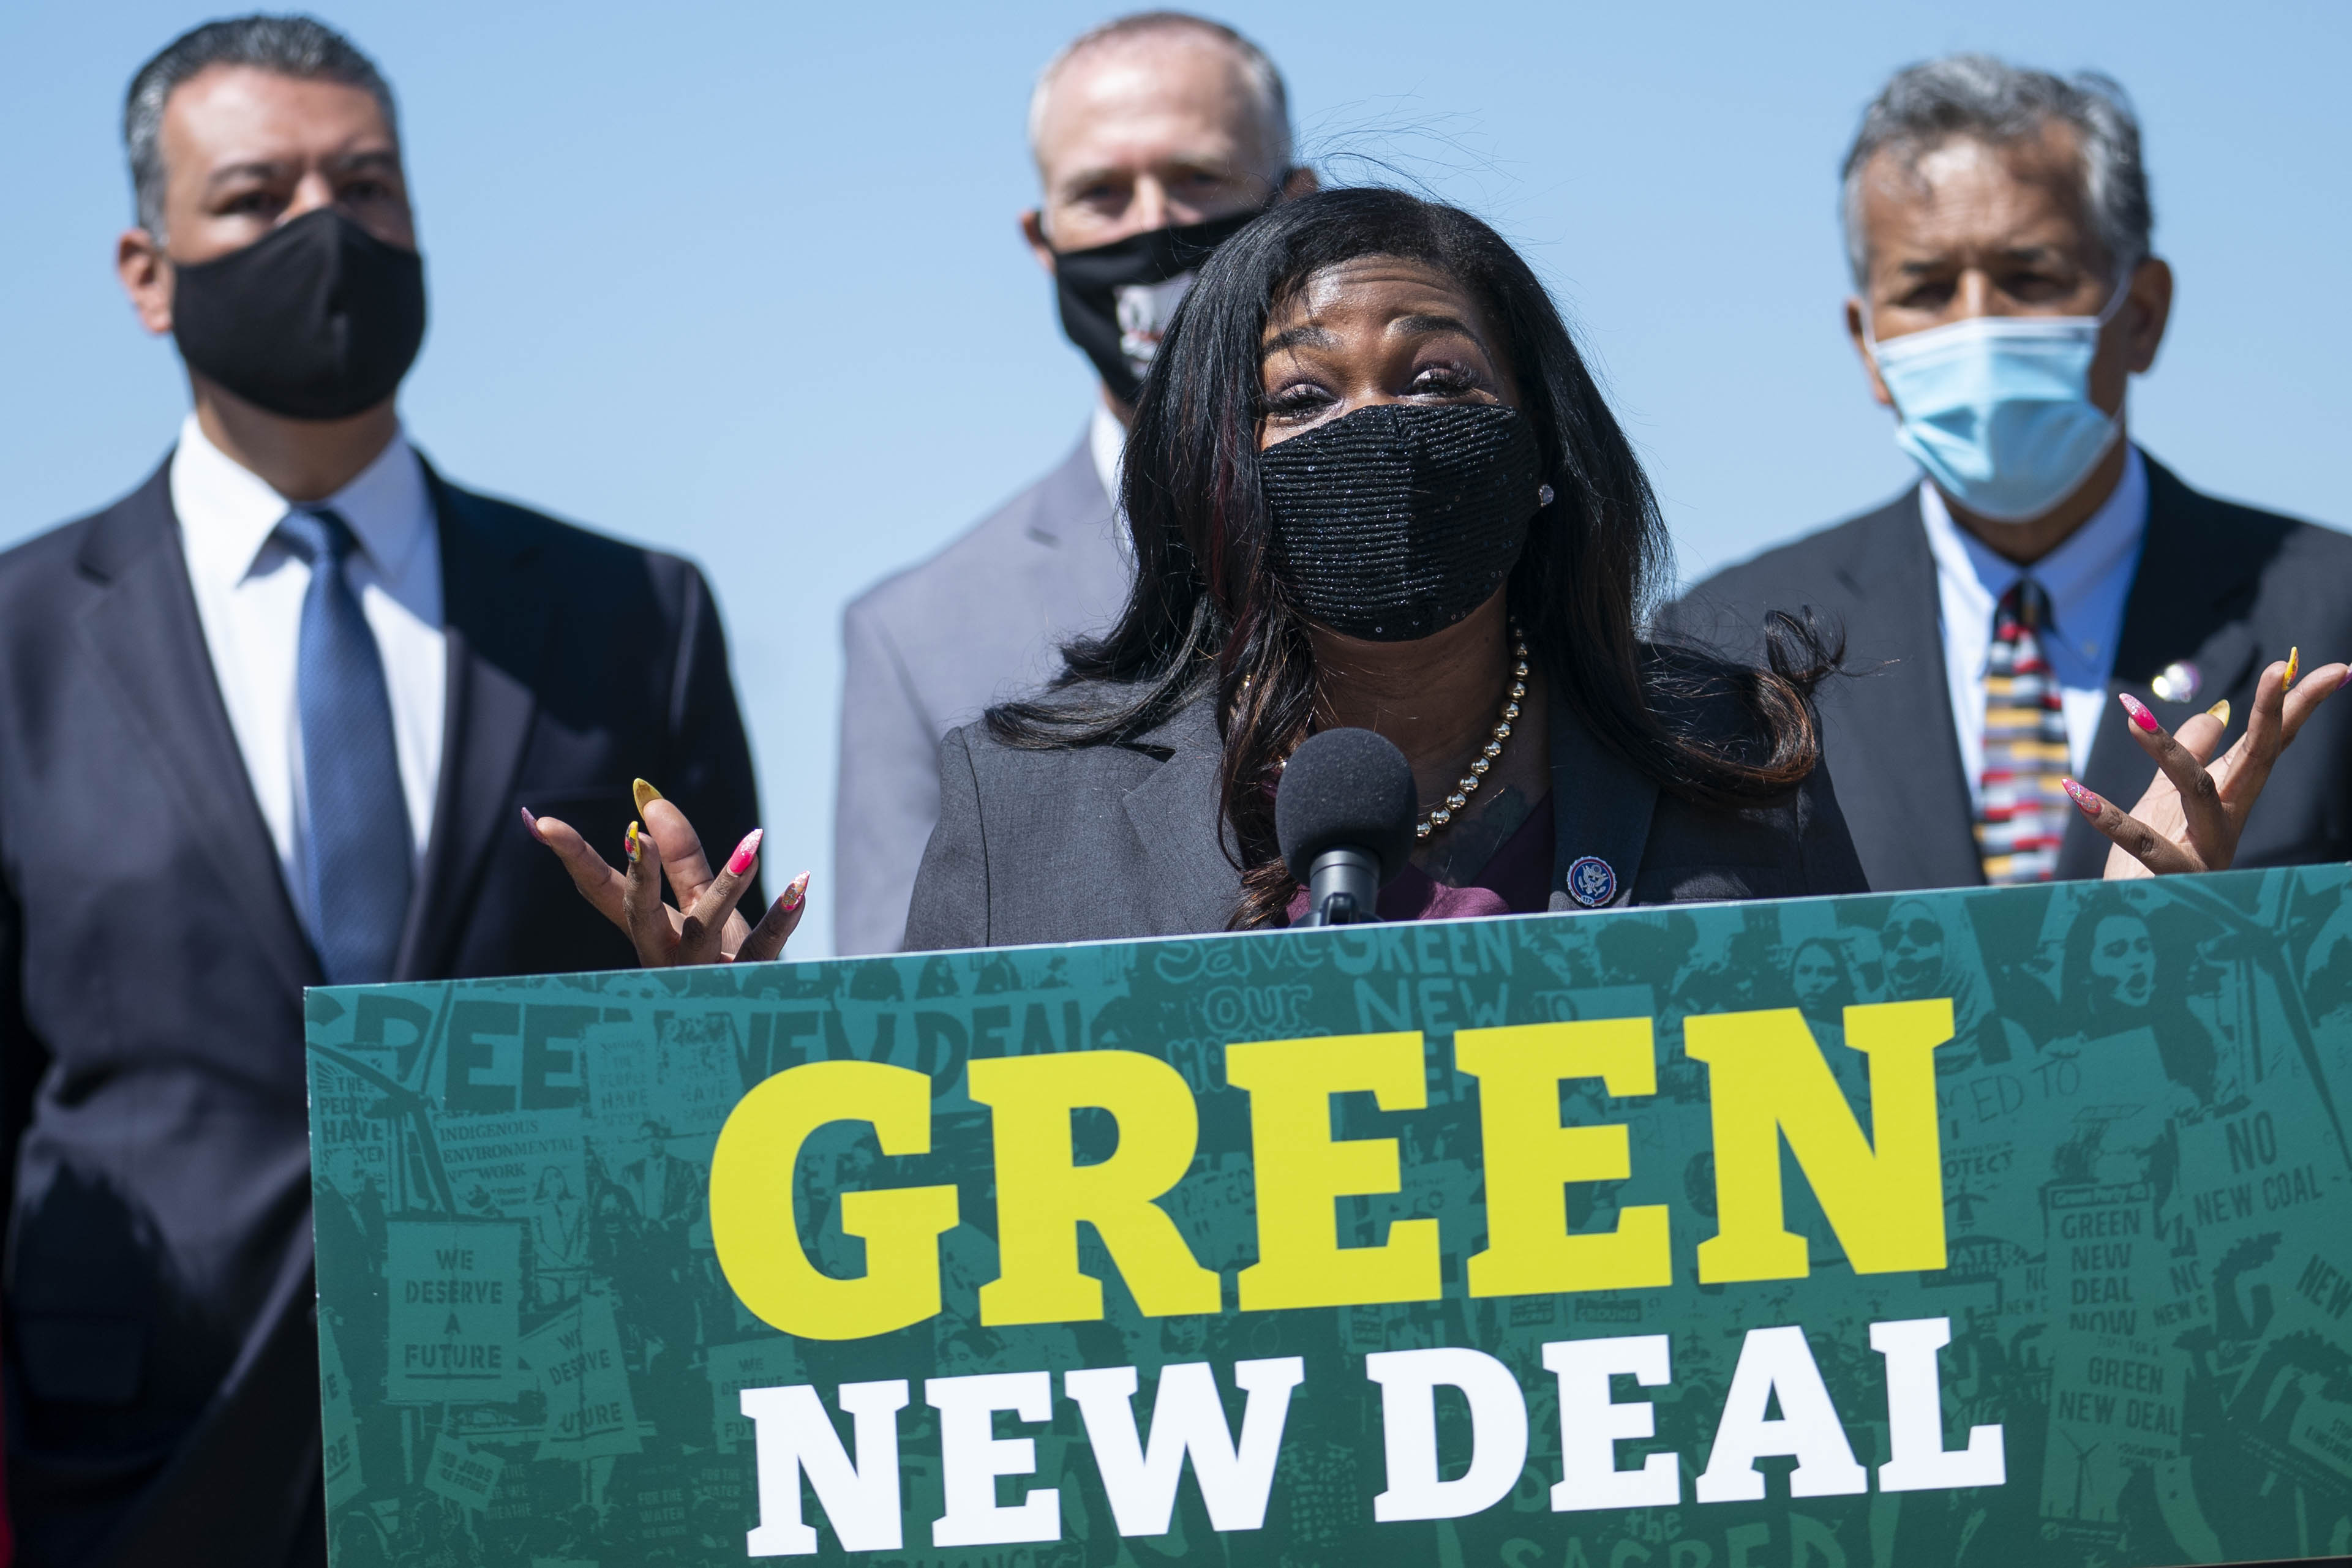 WASHINGTON, DC - APRIL 20: Rep. Cori Bush (D-MO) speaks during a news conference held to re-introduce the Green New Deal at the West Front of the U.S. Capitol on April 20, 2021 in Washington, DC. The news conference was held ahead of Earth Day later this week. (Photo by Sarah Silbiger/Getty Images)